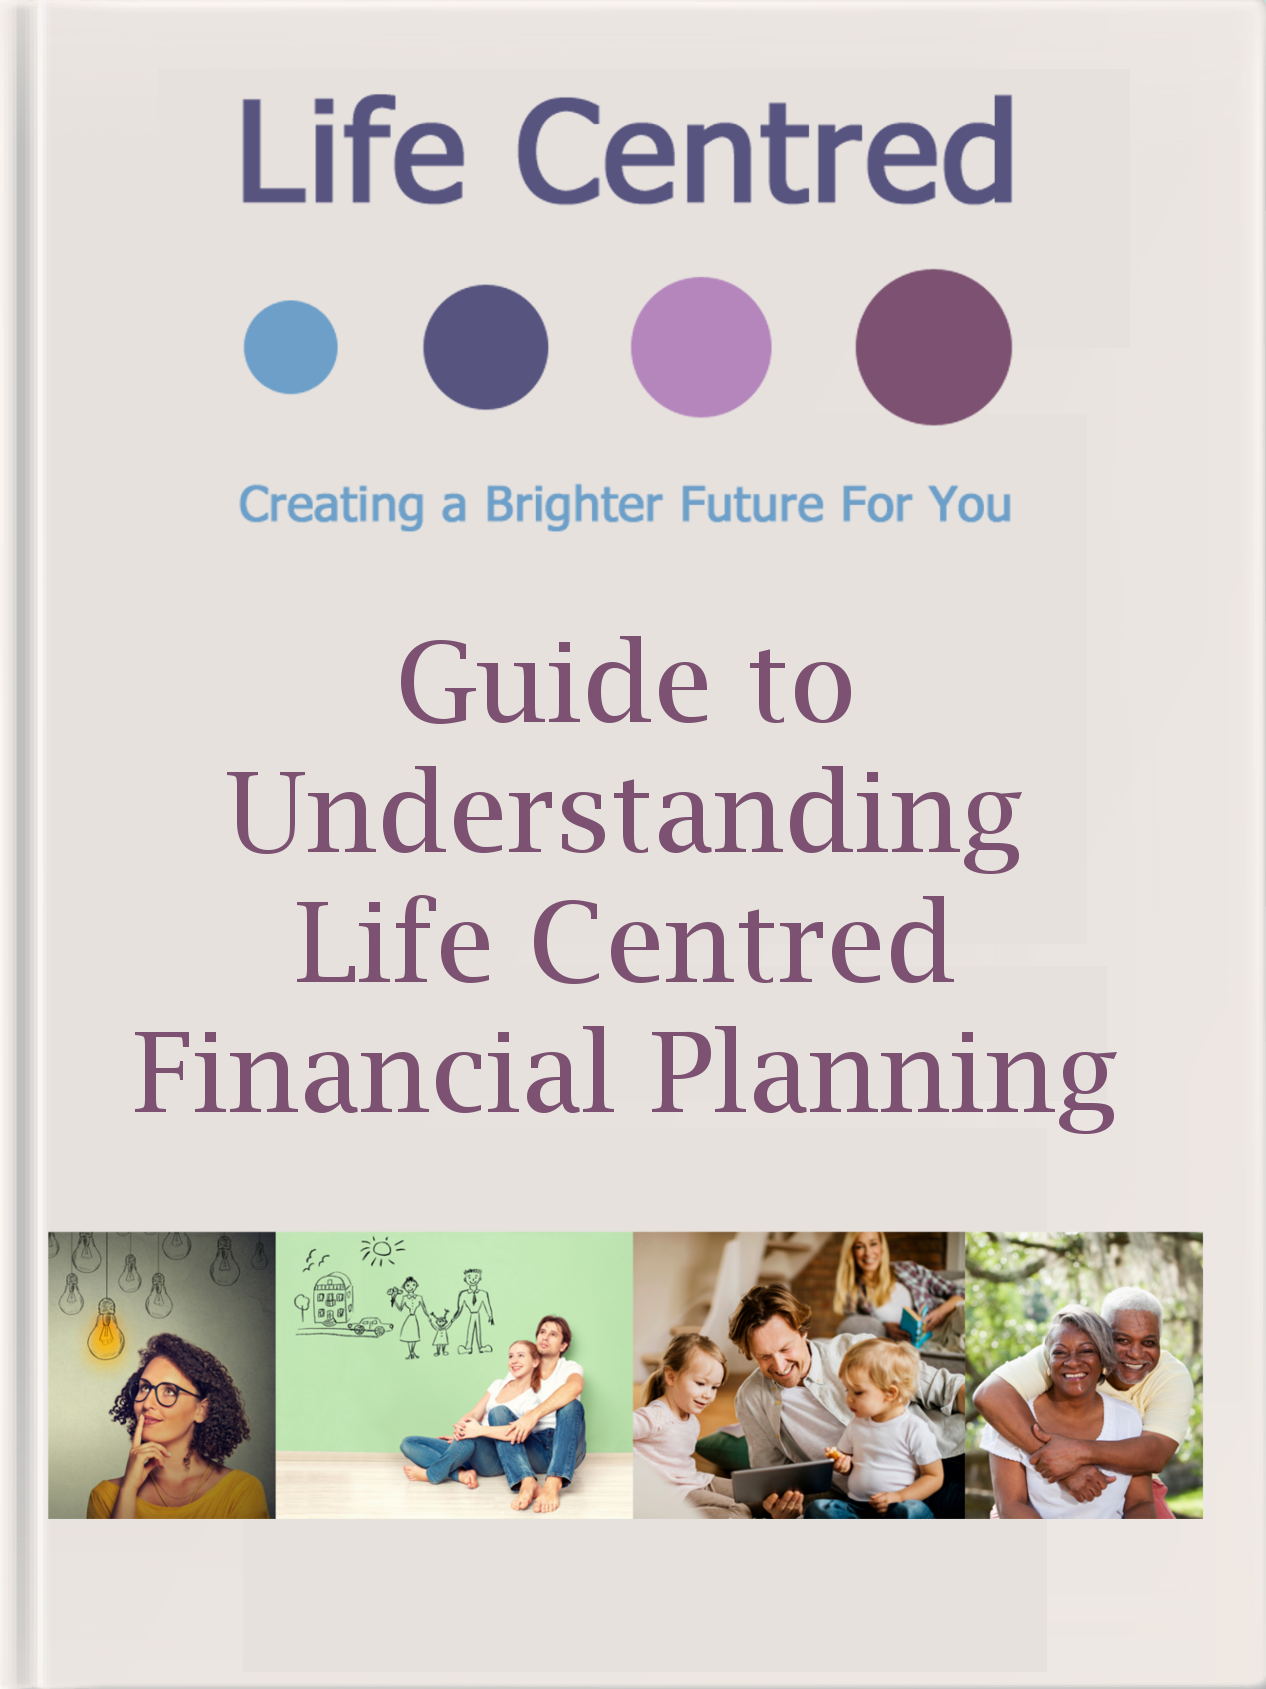 Download our Understanding Life Centred Financial Planning Guide